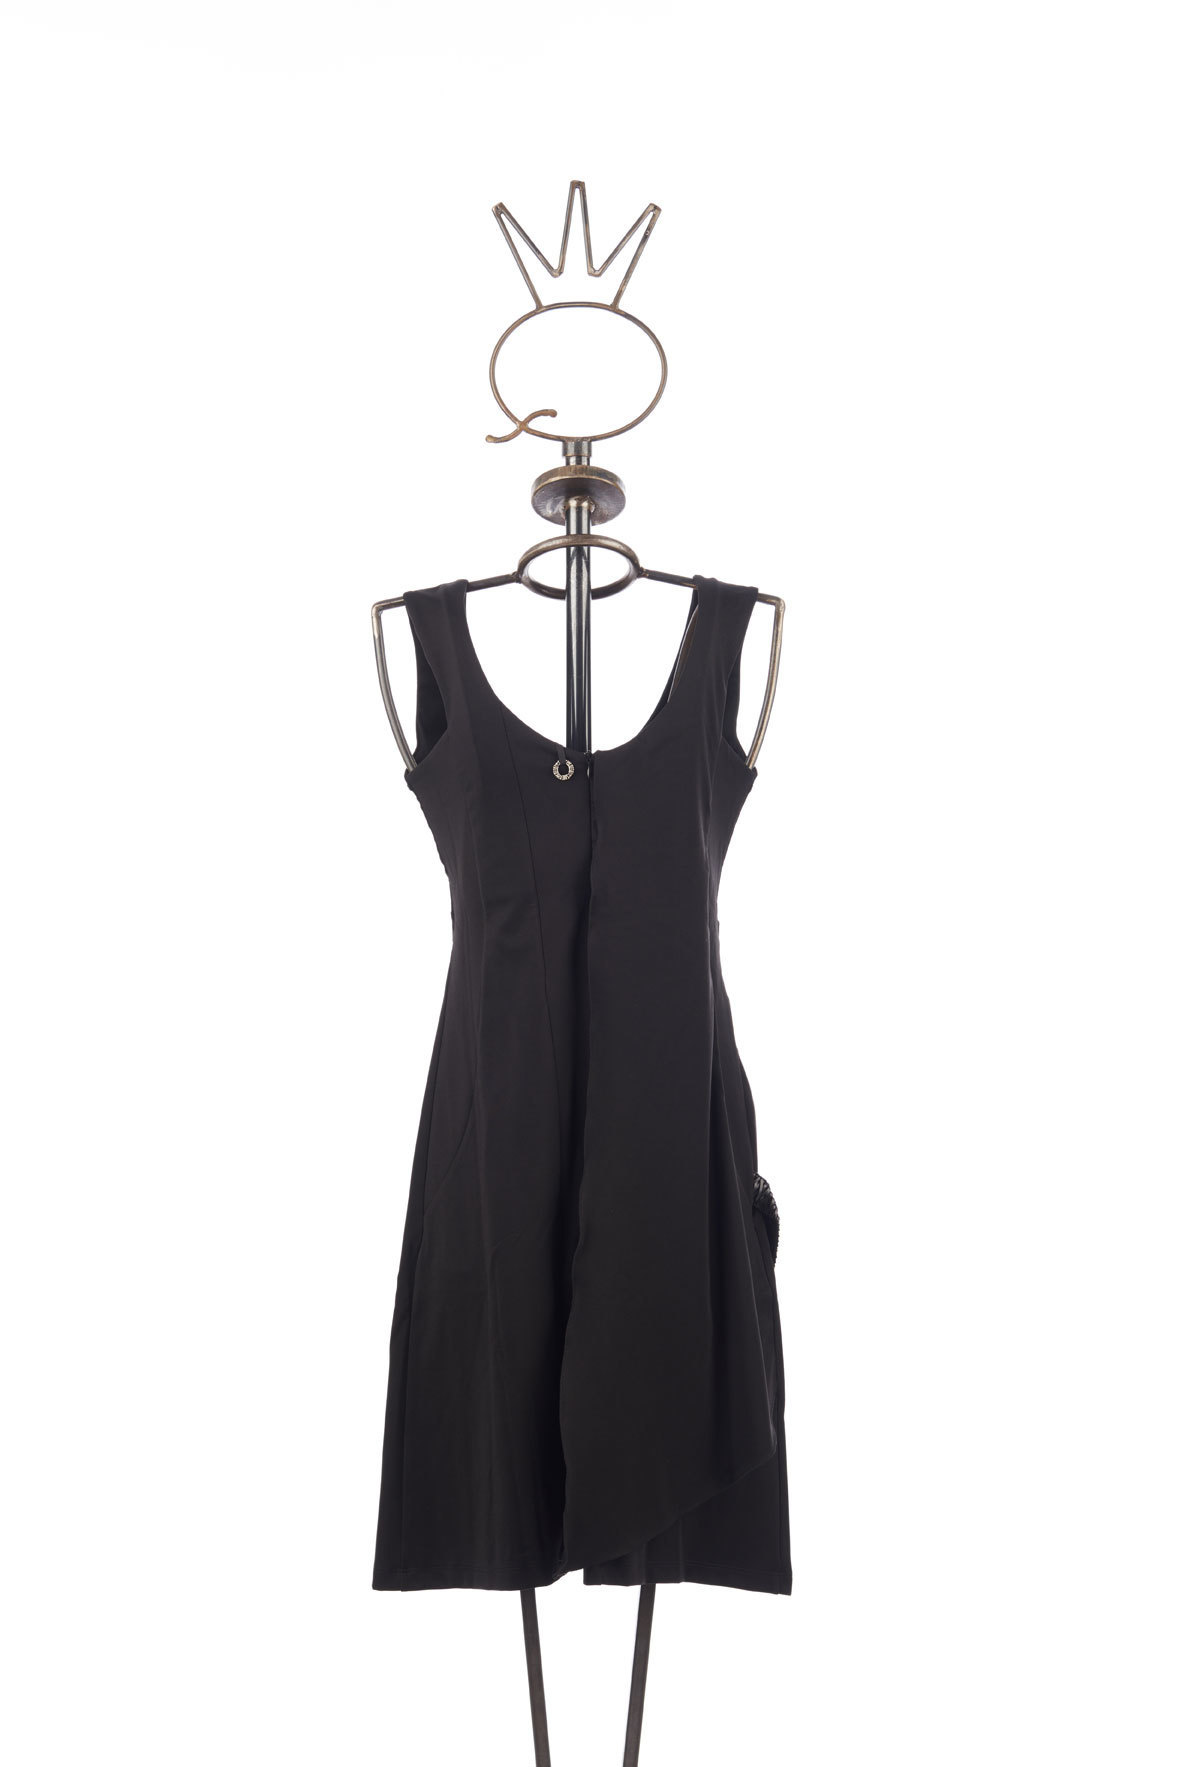 Save the Queen: Asymmetrical Draped Black Bow Dress (1 Left!)